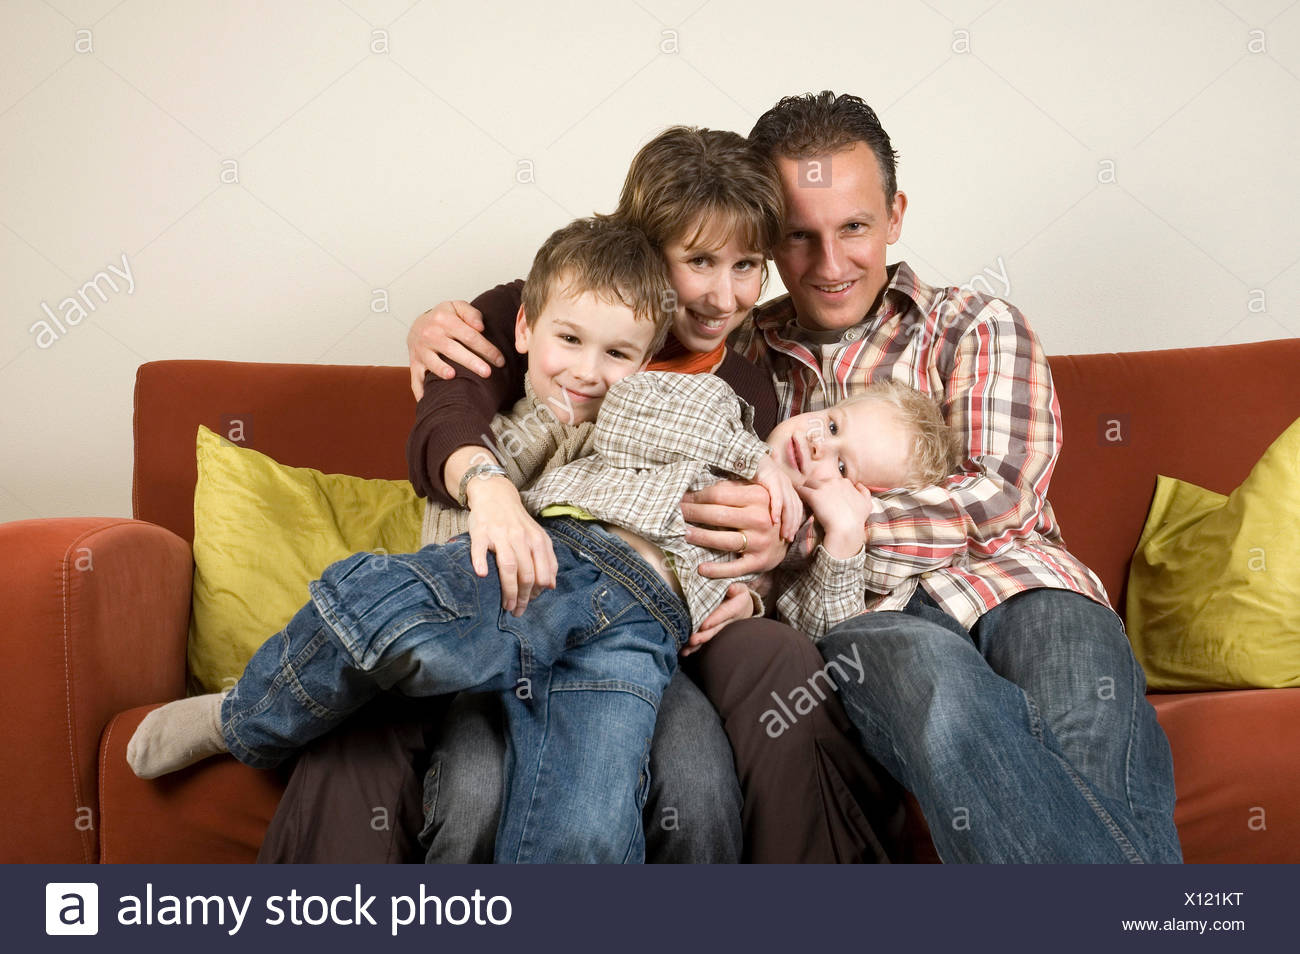 Family On A Couch 3 - Stock Image